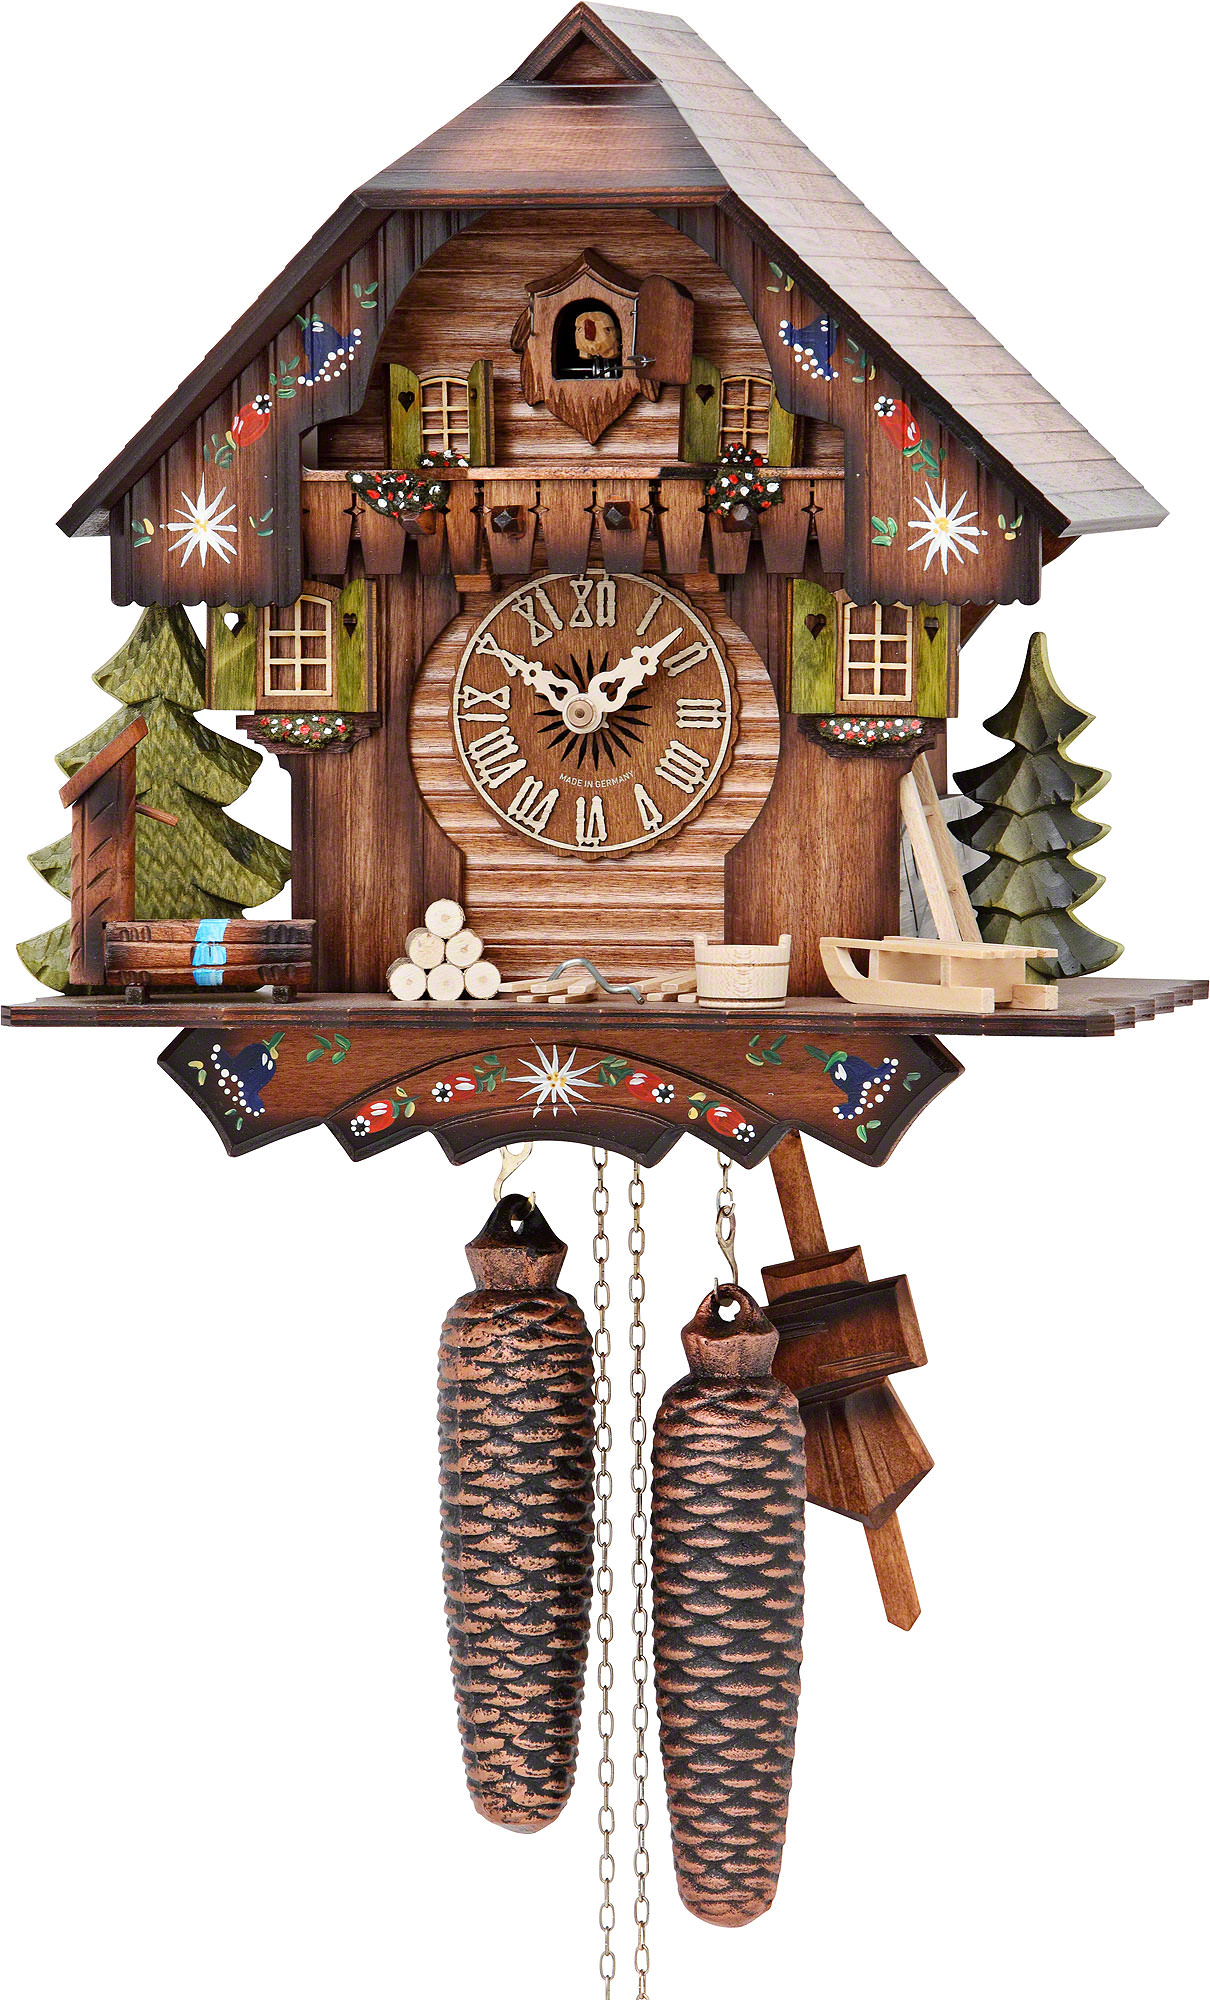 Cuckoo Clock 8-day-movement Chalet-Style 30cm by Hekas - 876 EX